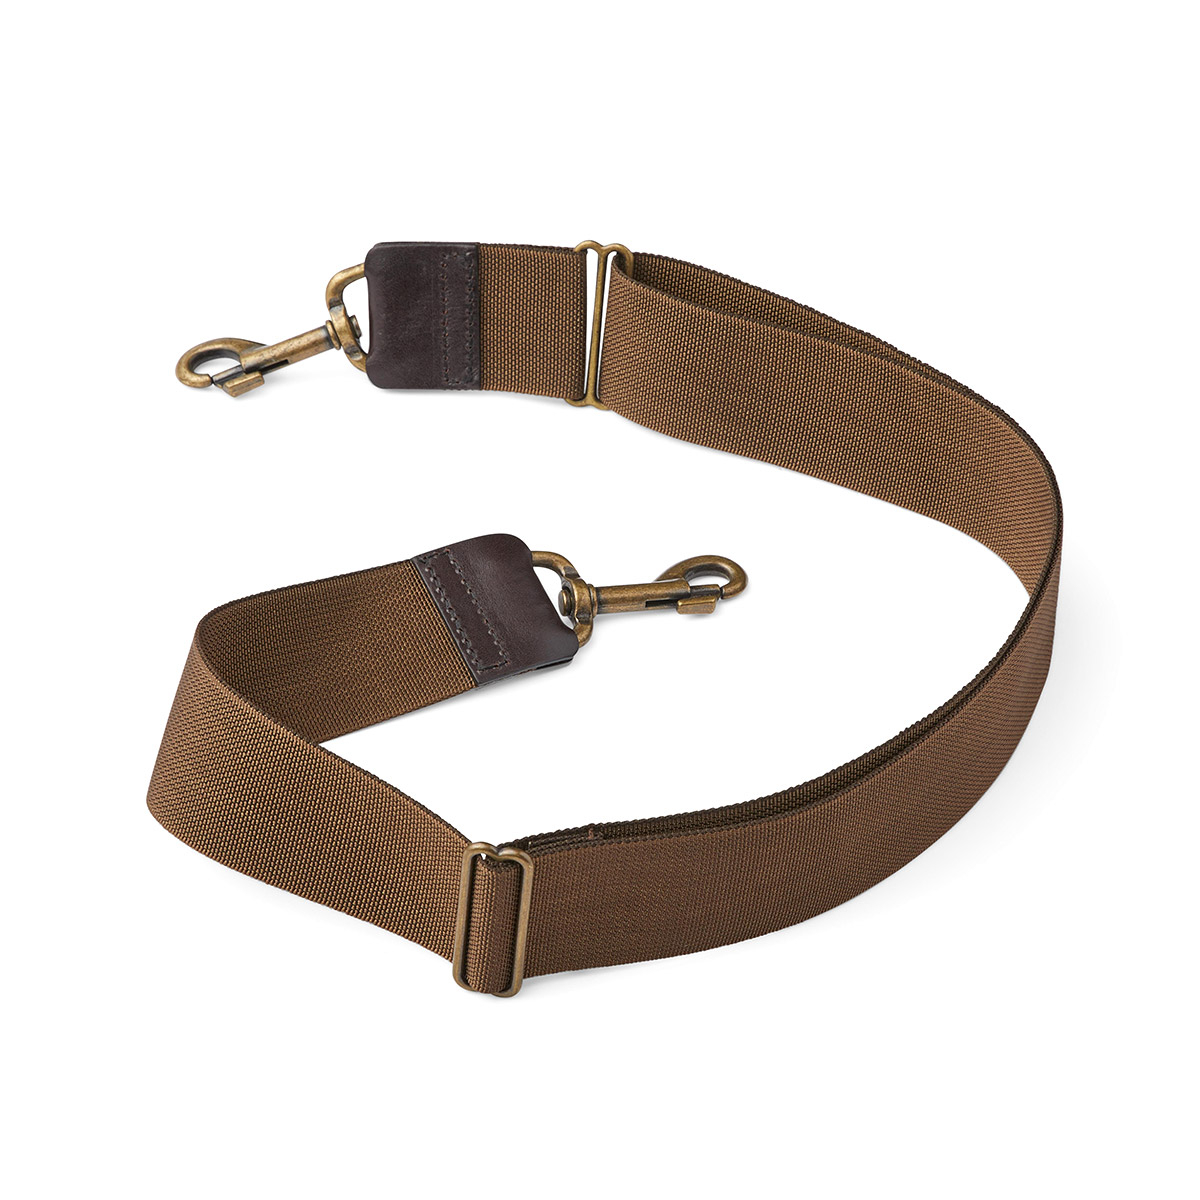 Filson Dryden Webbing Shoulder Strap 20166779-Brown